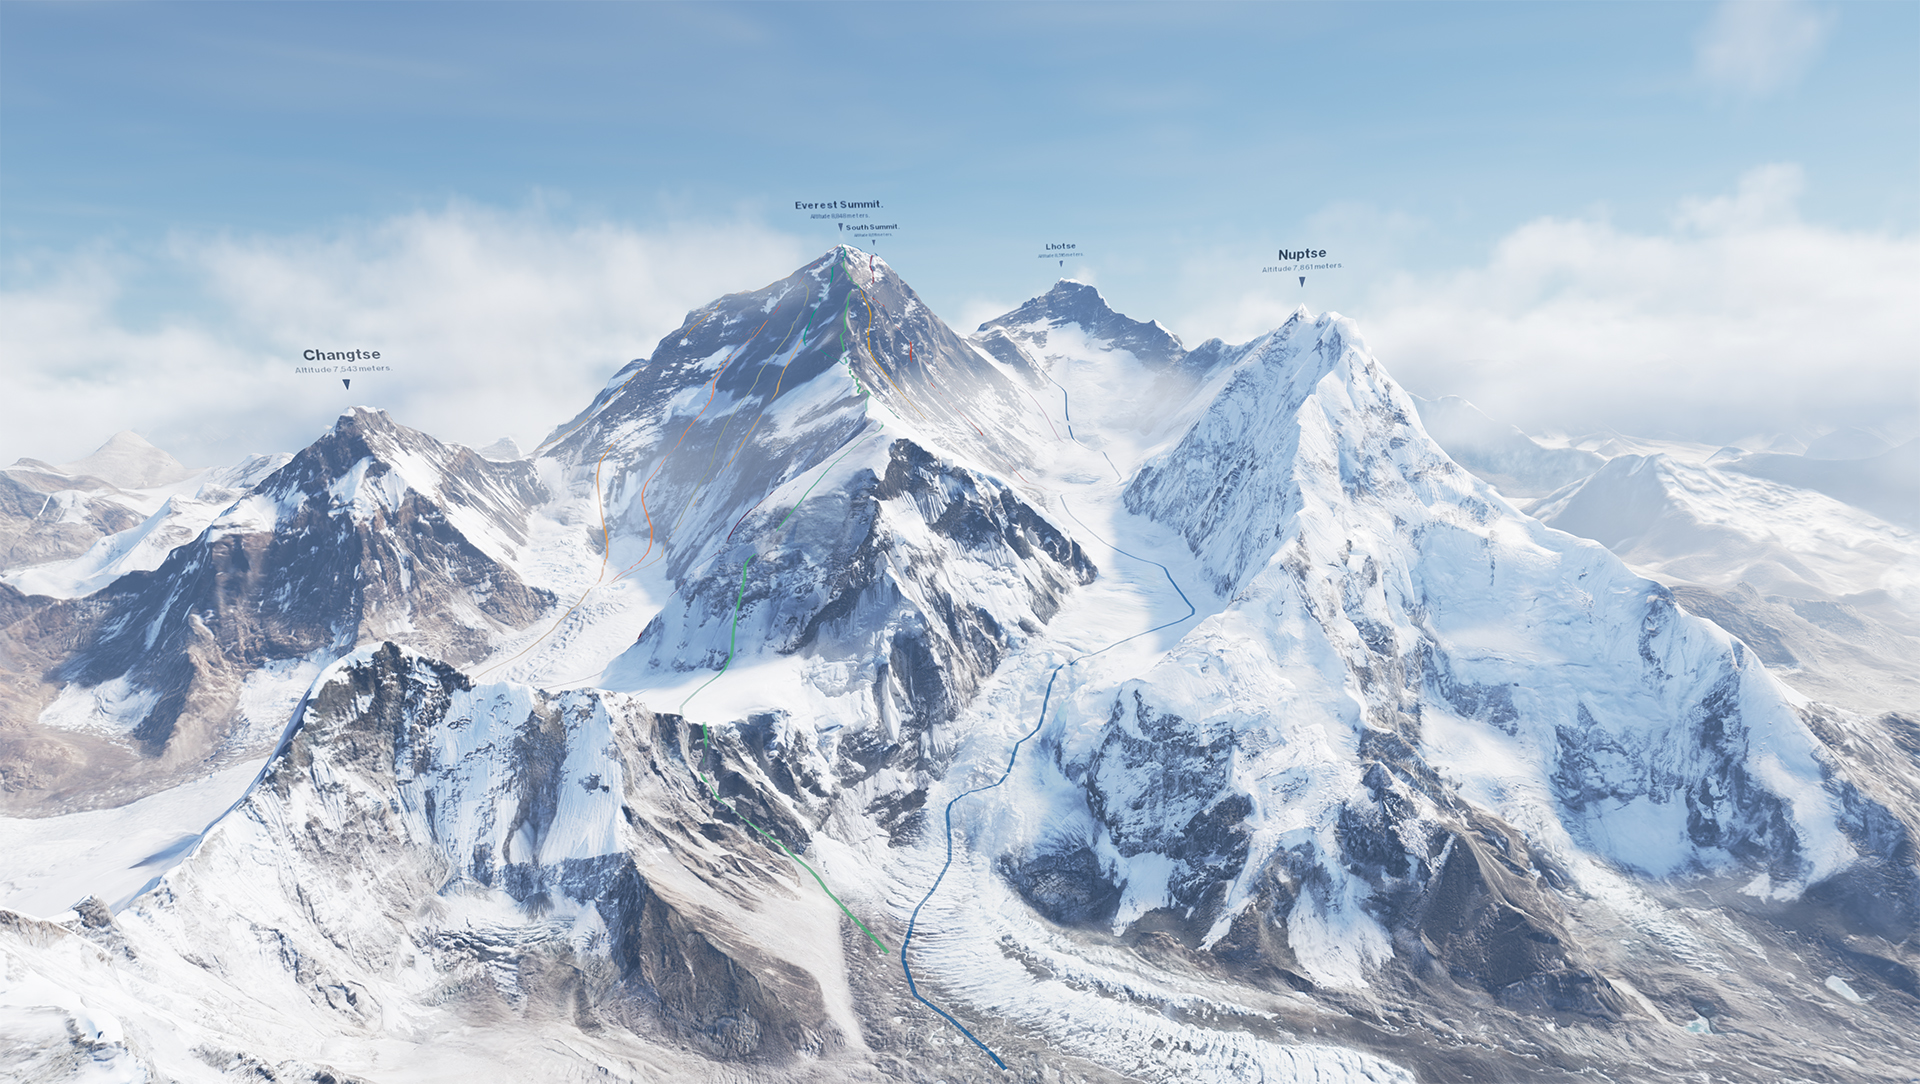 Everest Vr Releases Today On Playstation Vr